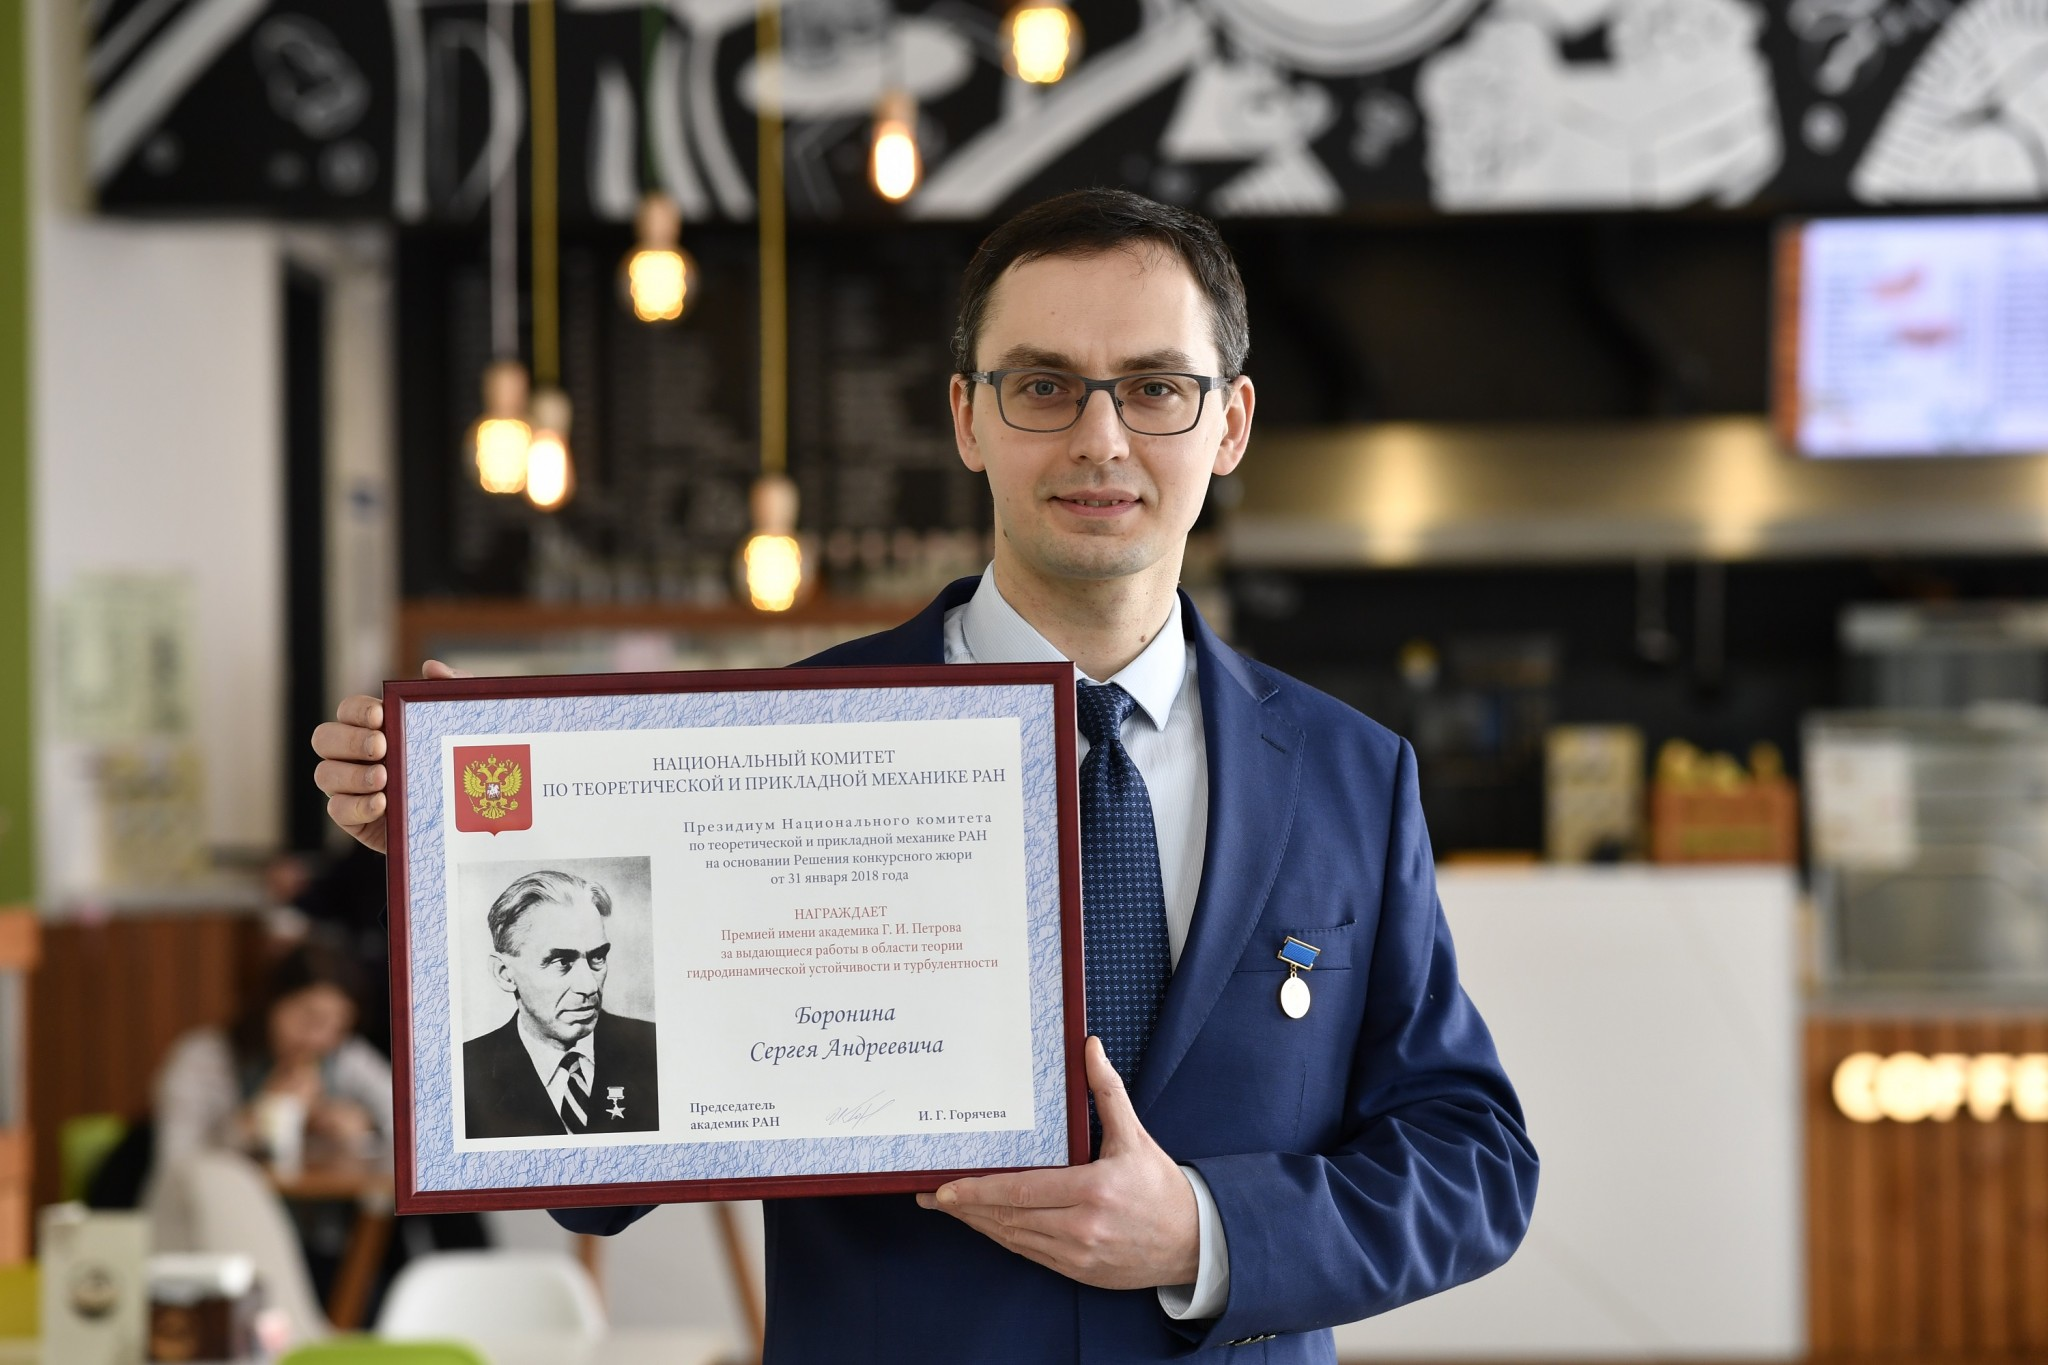 Sergey Boronin, pictured at Skoltech with his prize. Photo: Skoltech.